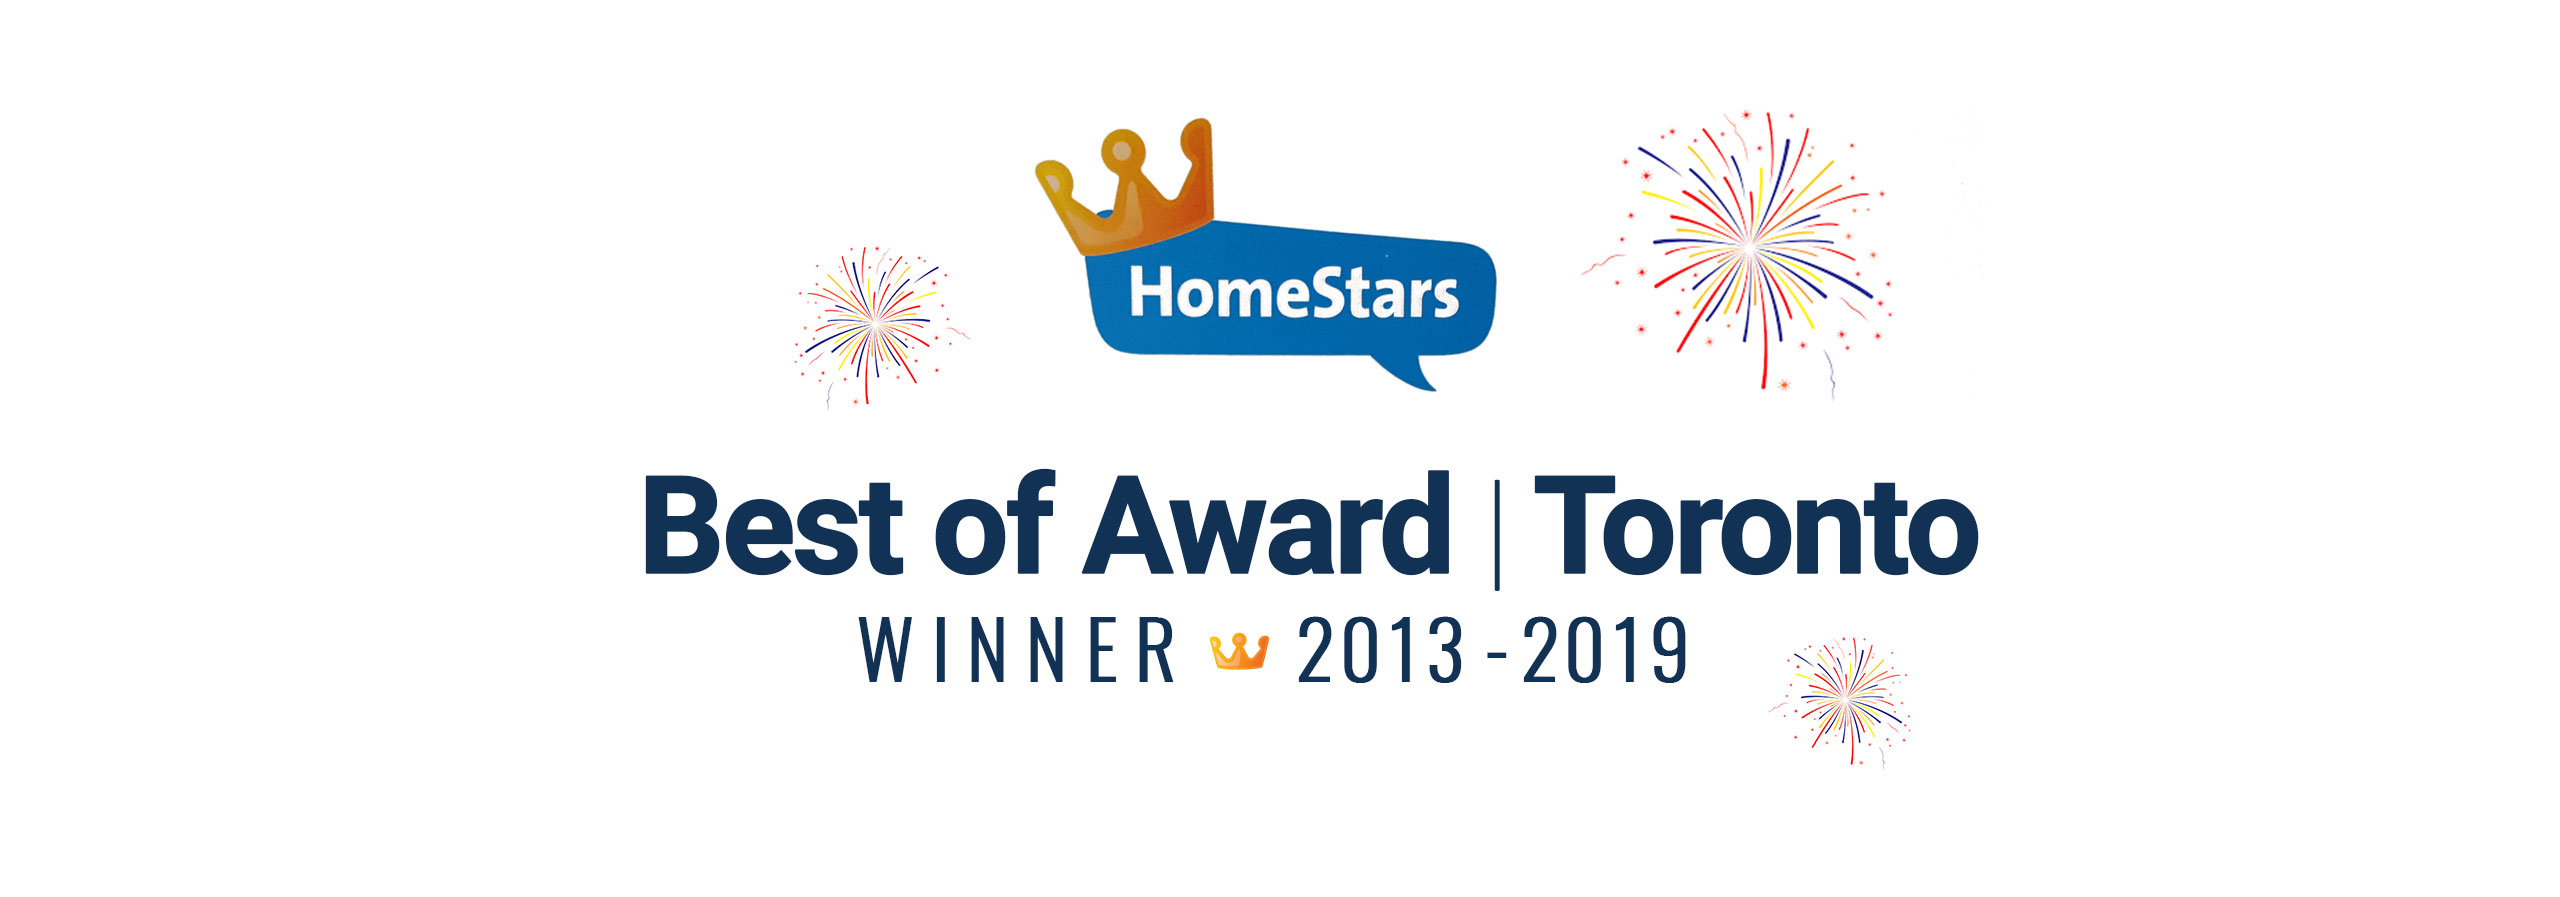 The Home Improvement Group - best of Homestars awards 2013-2019 for Toronto banner